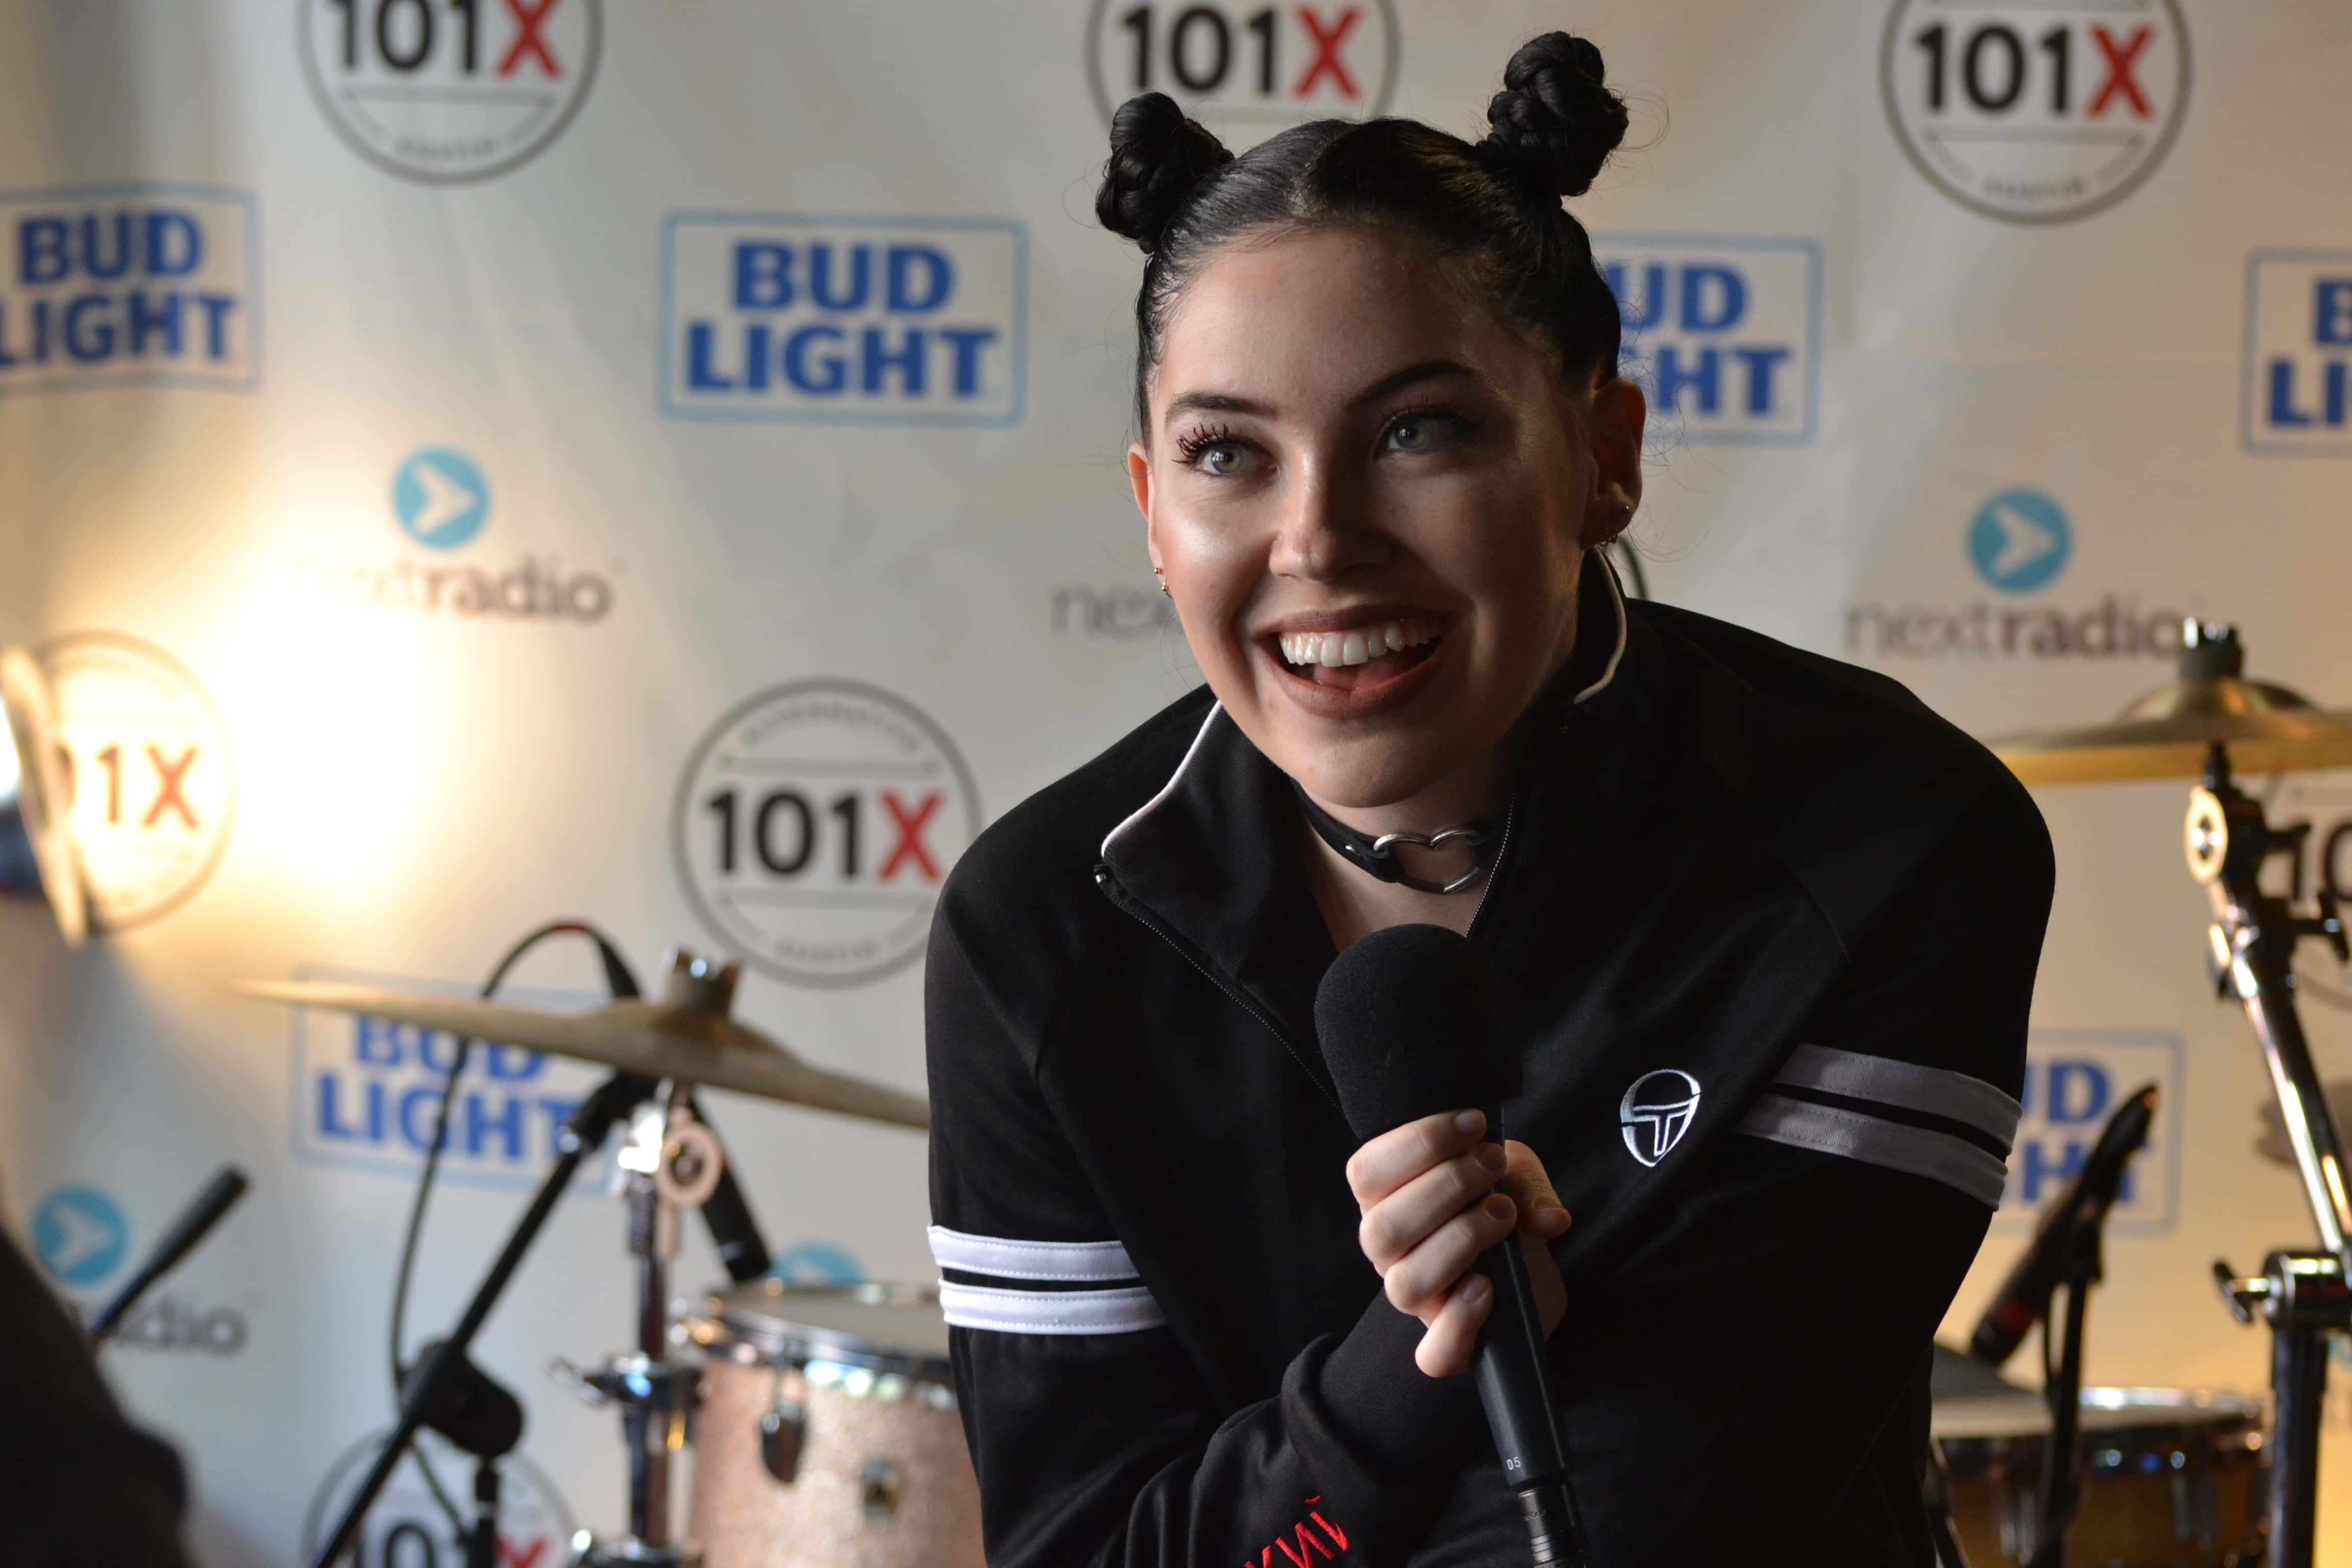 Bishop Briggs at the 101X Day Party during SXSW 2017